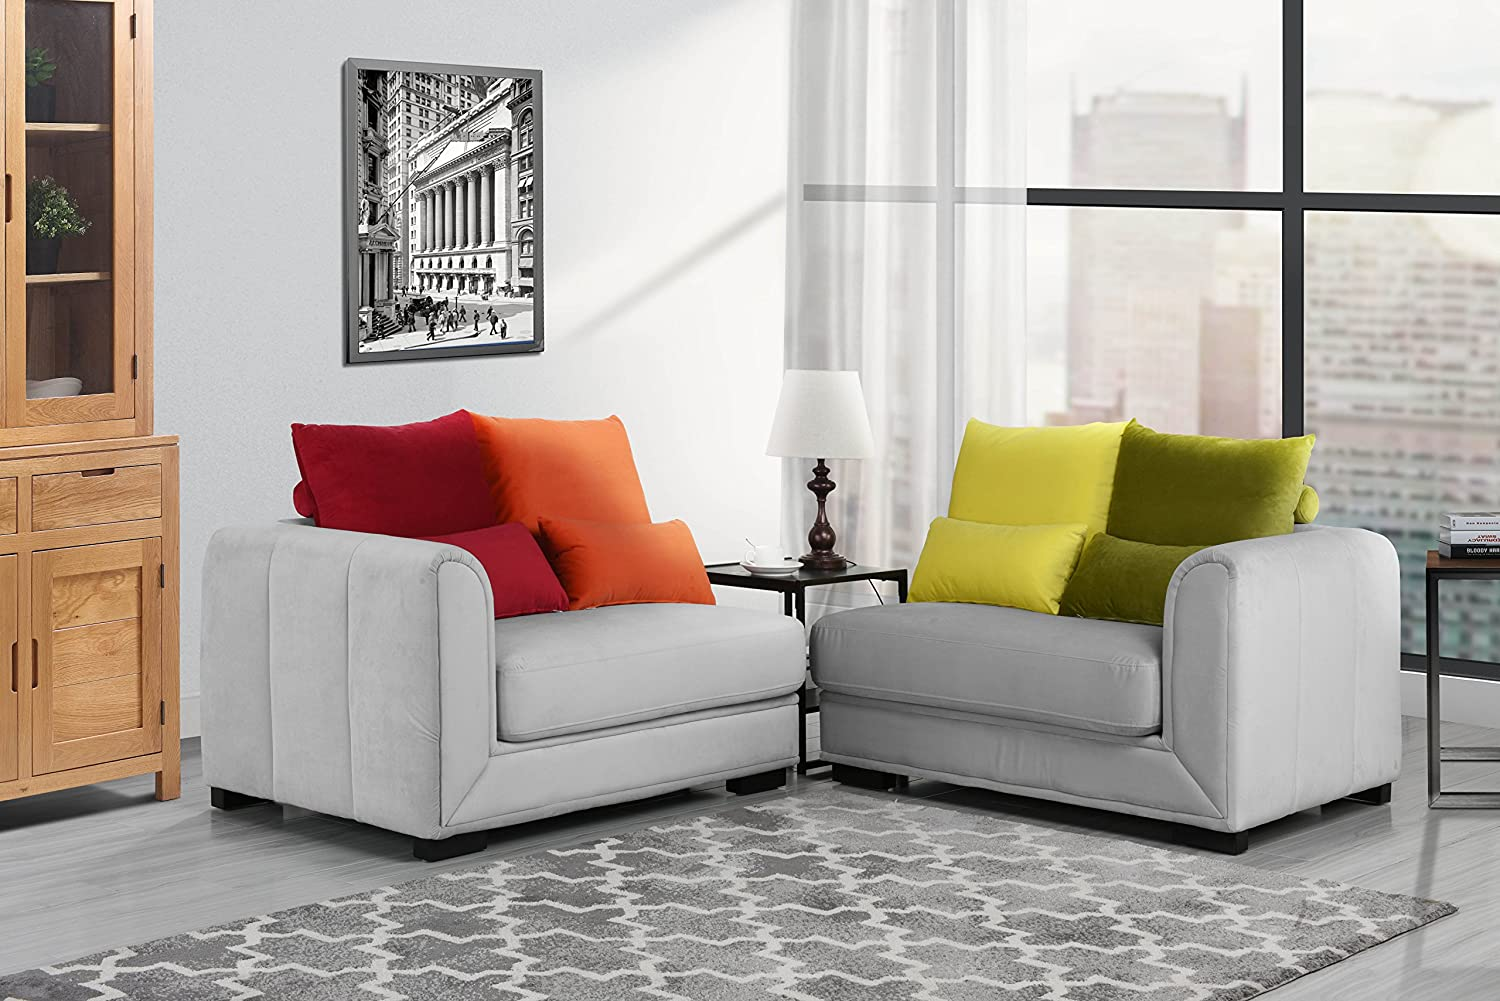 Classic 2 Piece Colorful Velvet Convertible Living Room Sofa, Adjustable Couch (Light Grey)